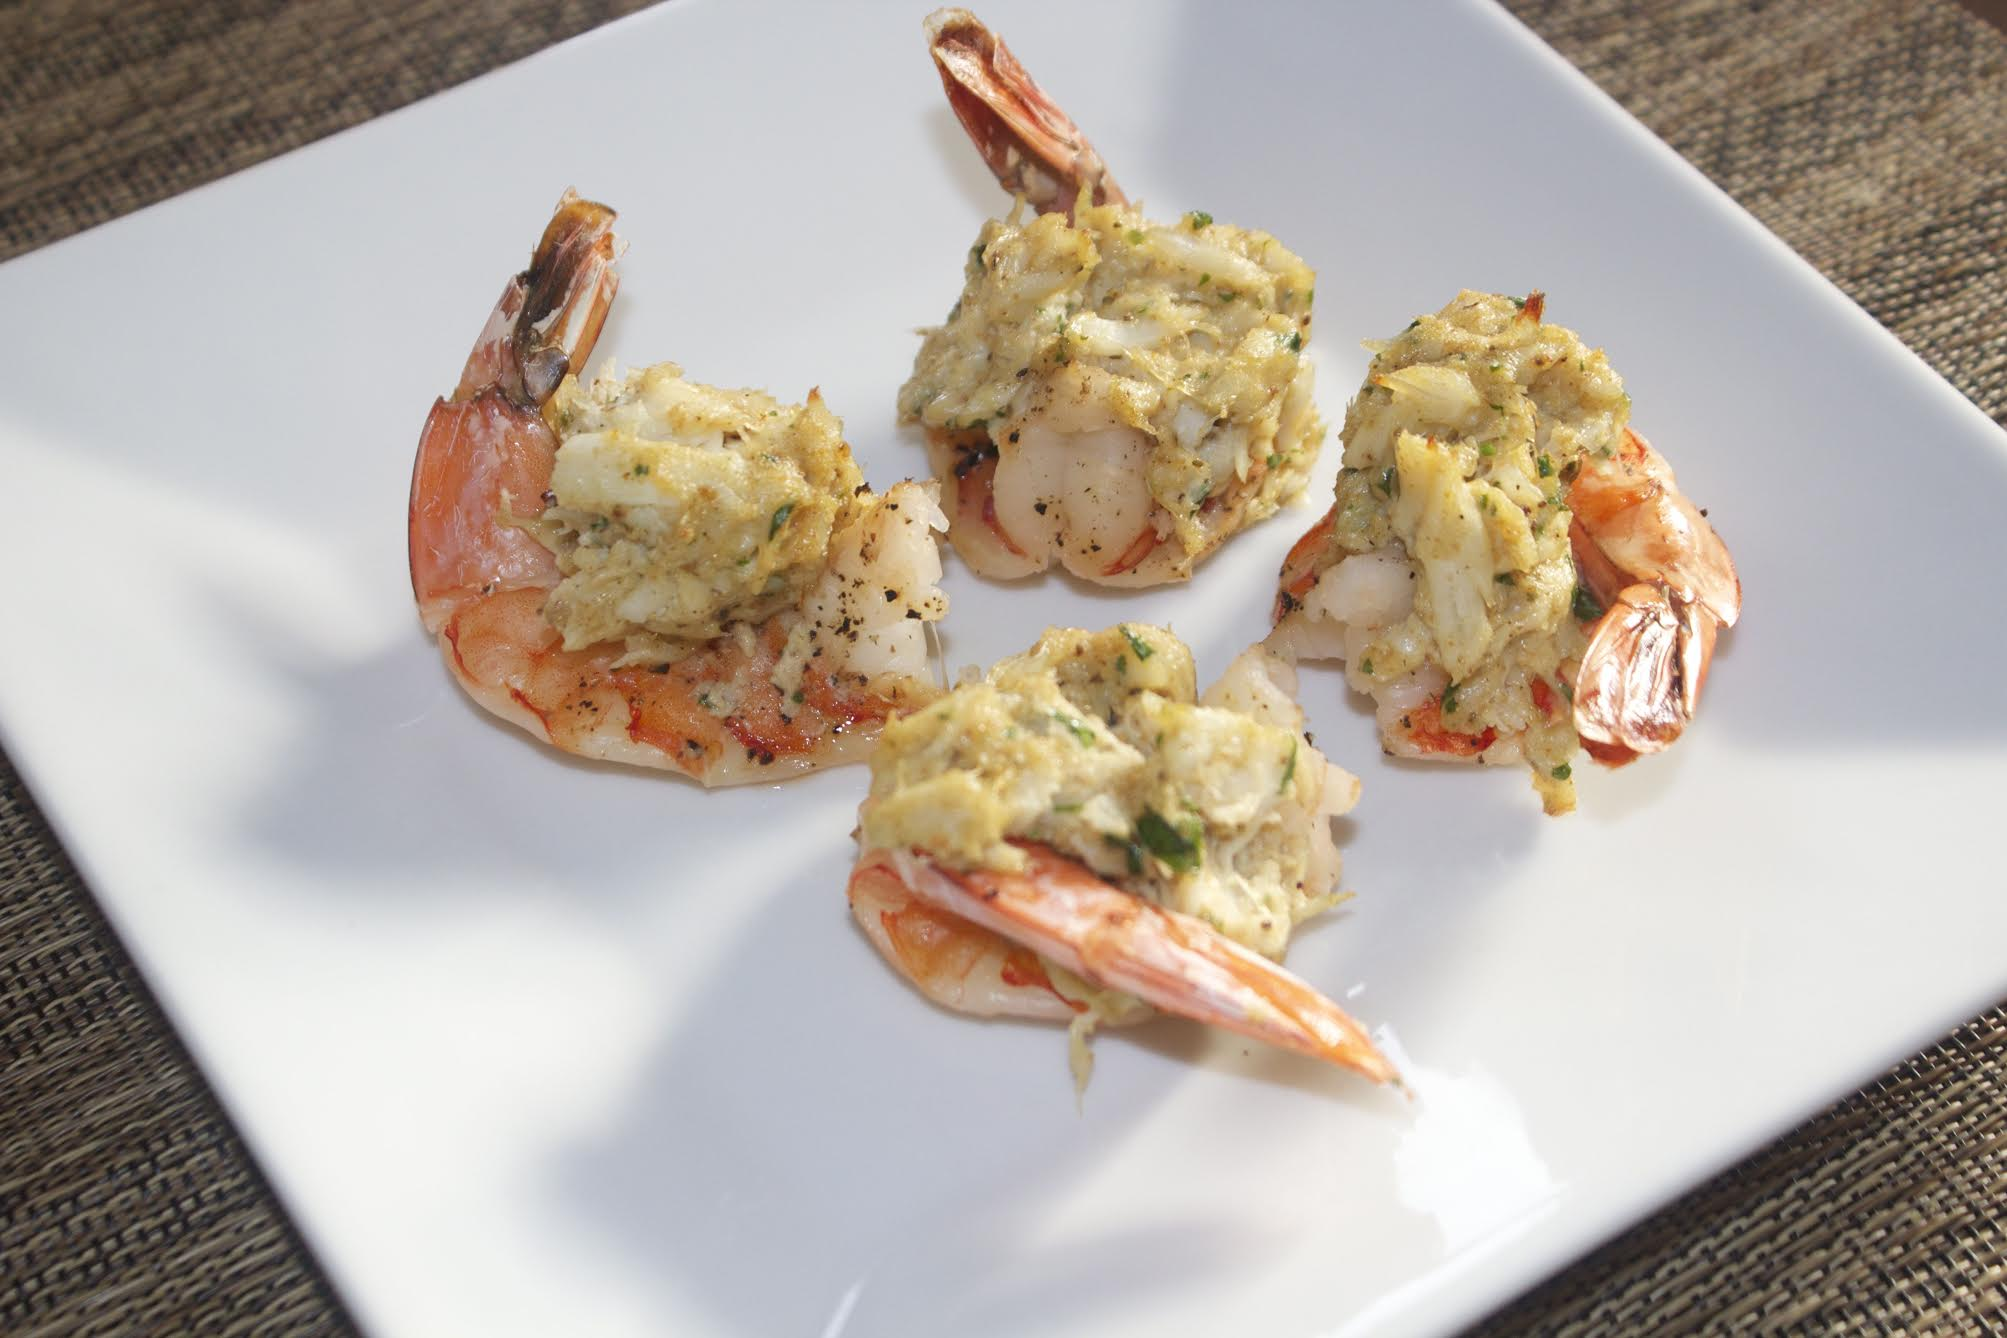 Delicious stuffed shrimp from Cooked by Julie